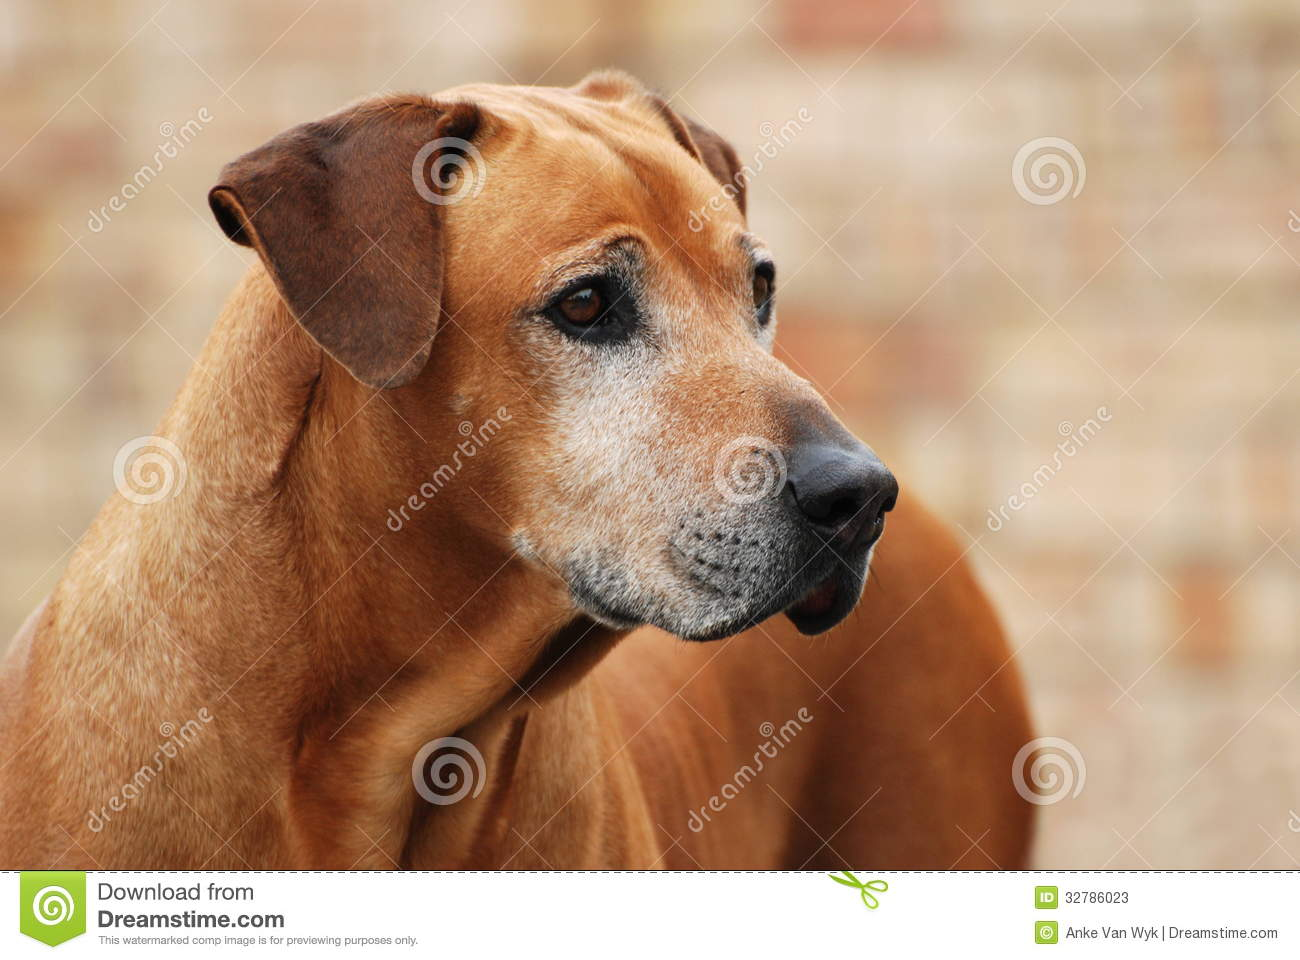 How Old Do Male Dogs Have To Be To Breed